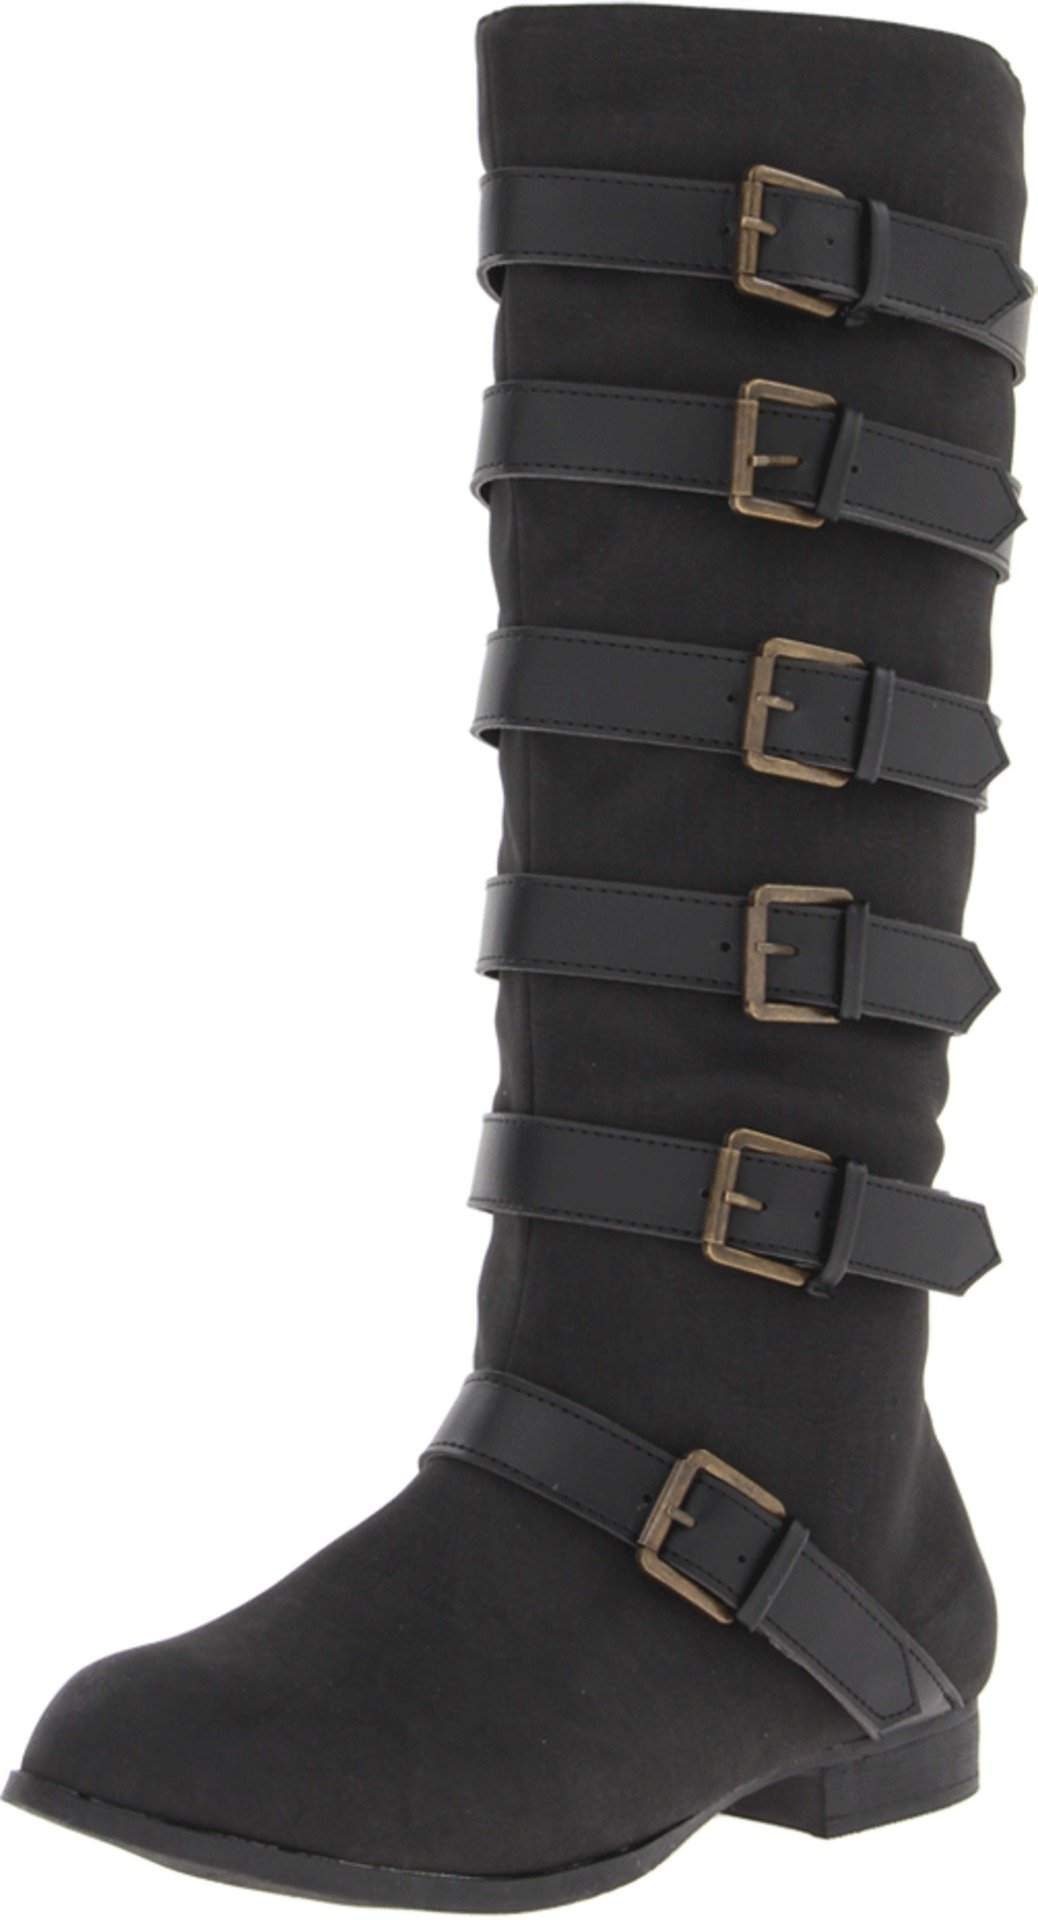 Penny Loves Kenny Women's Krista Riding Boot,Black,7.5 M US